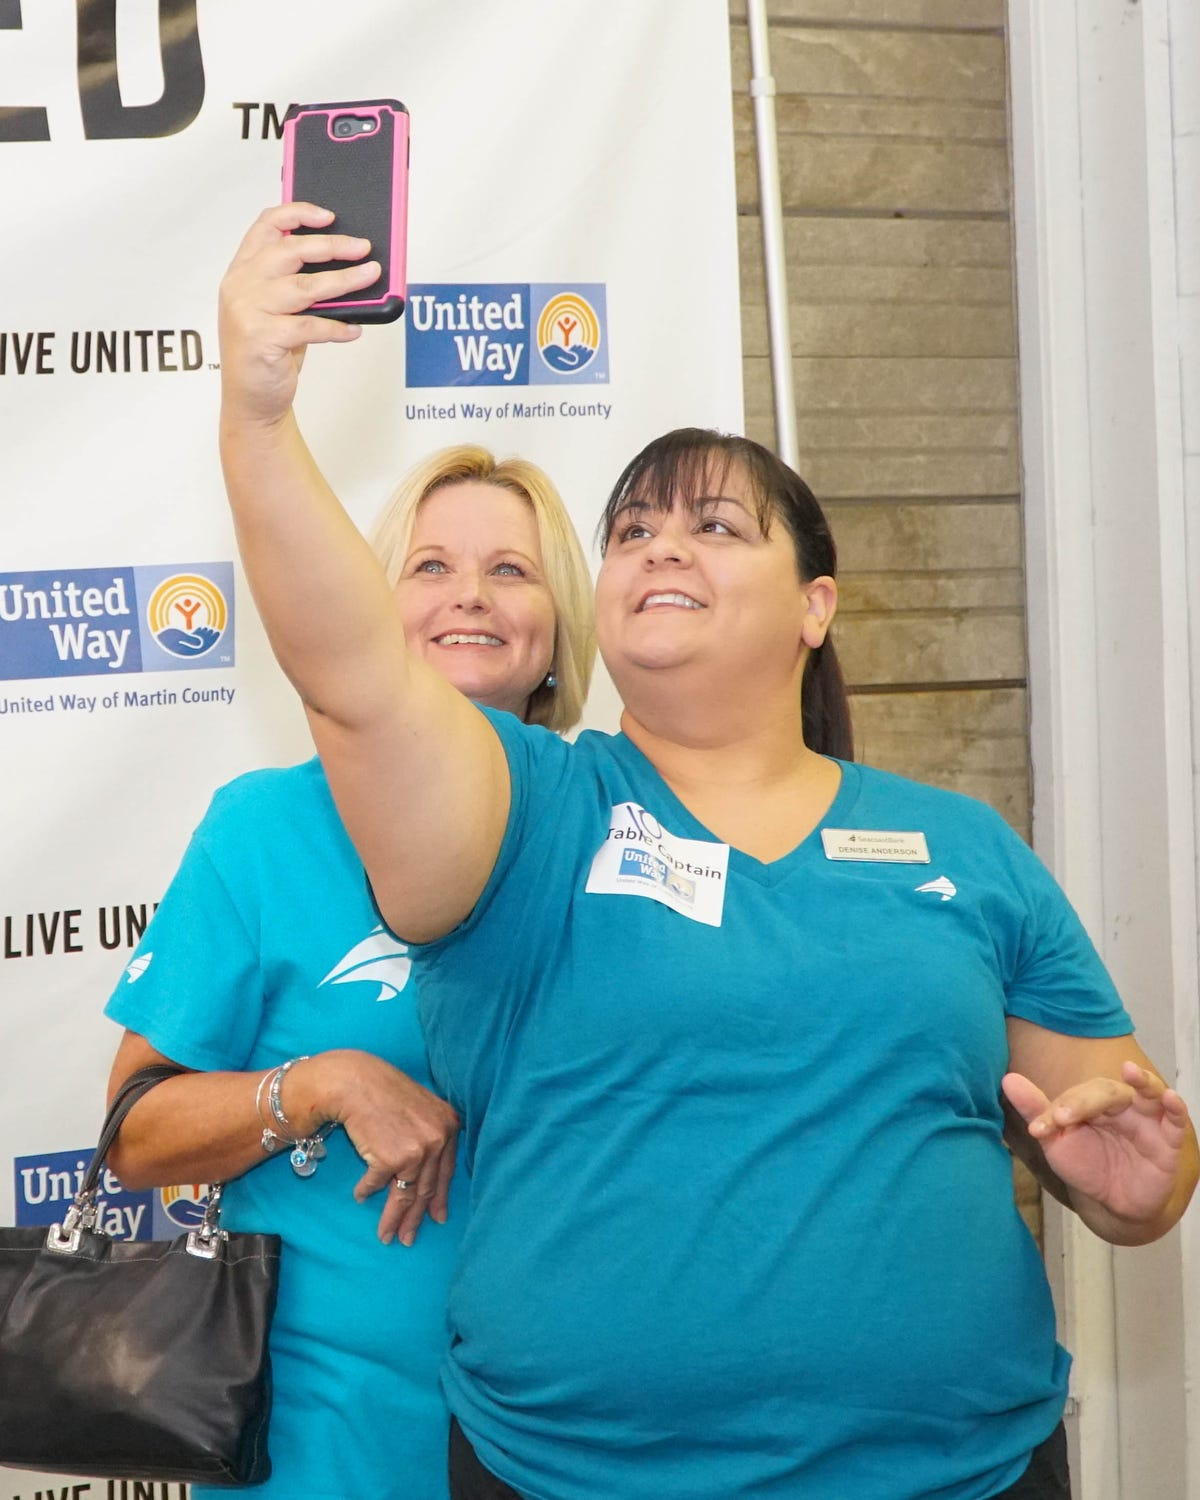 Martin County United Way combines Day of Caring with Sept  11